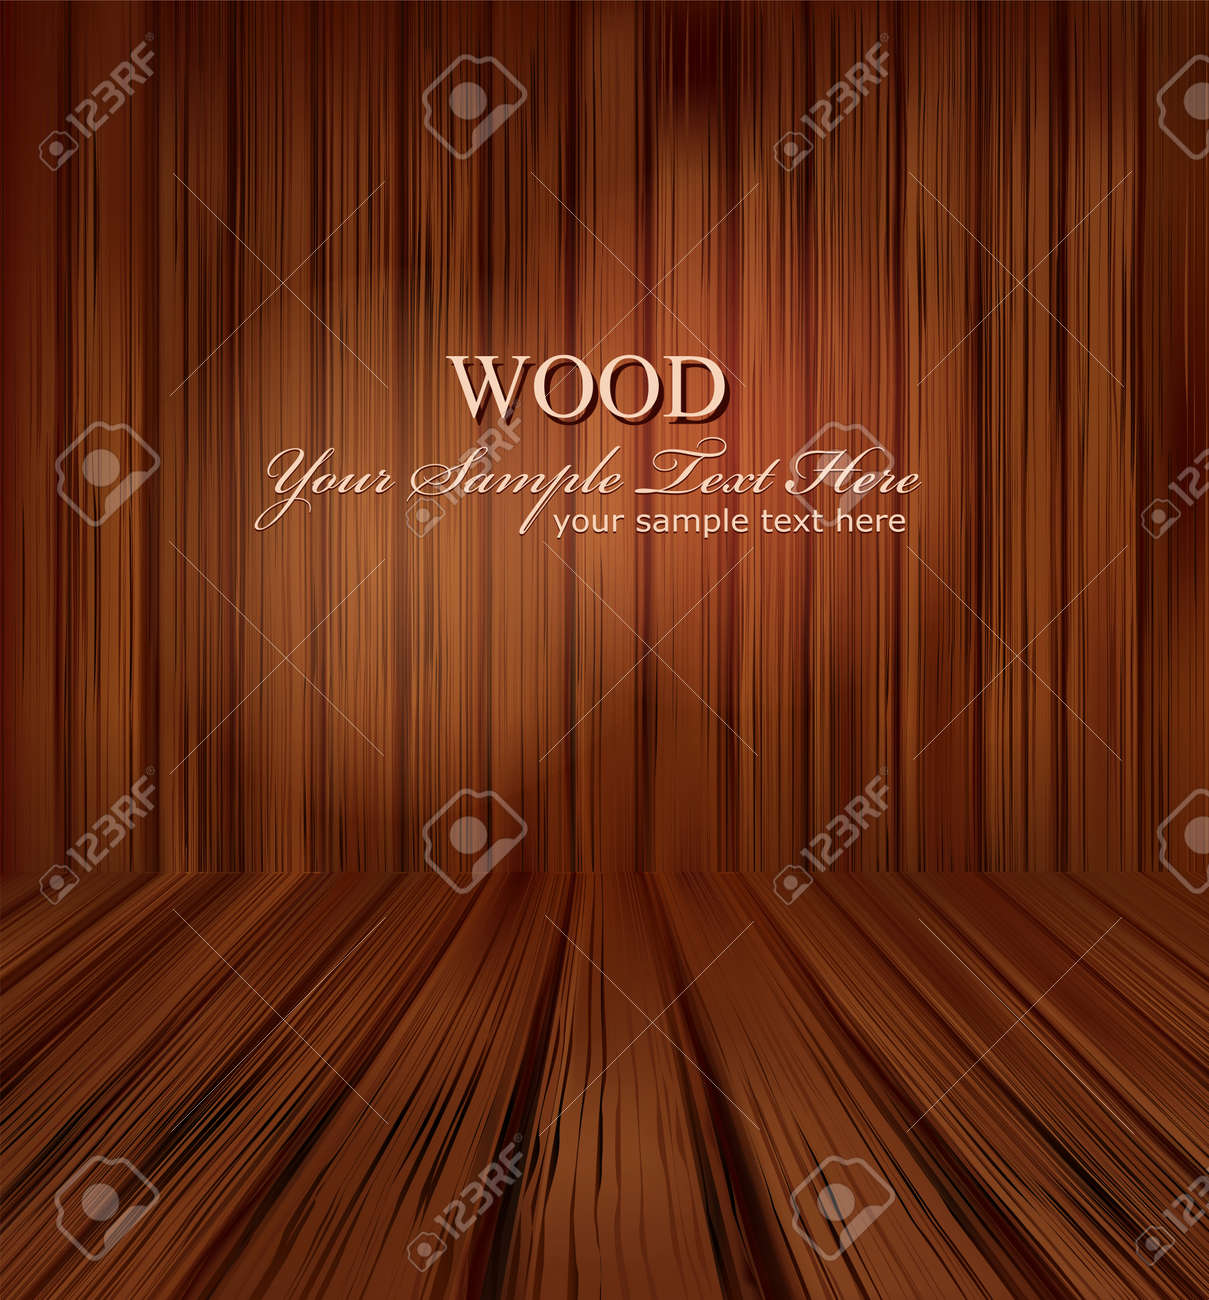 vector wooden planks interior with Illuminated Stock Vector - 8987547